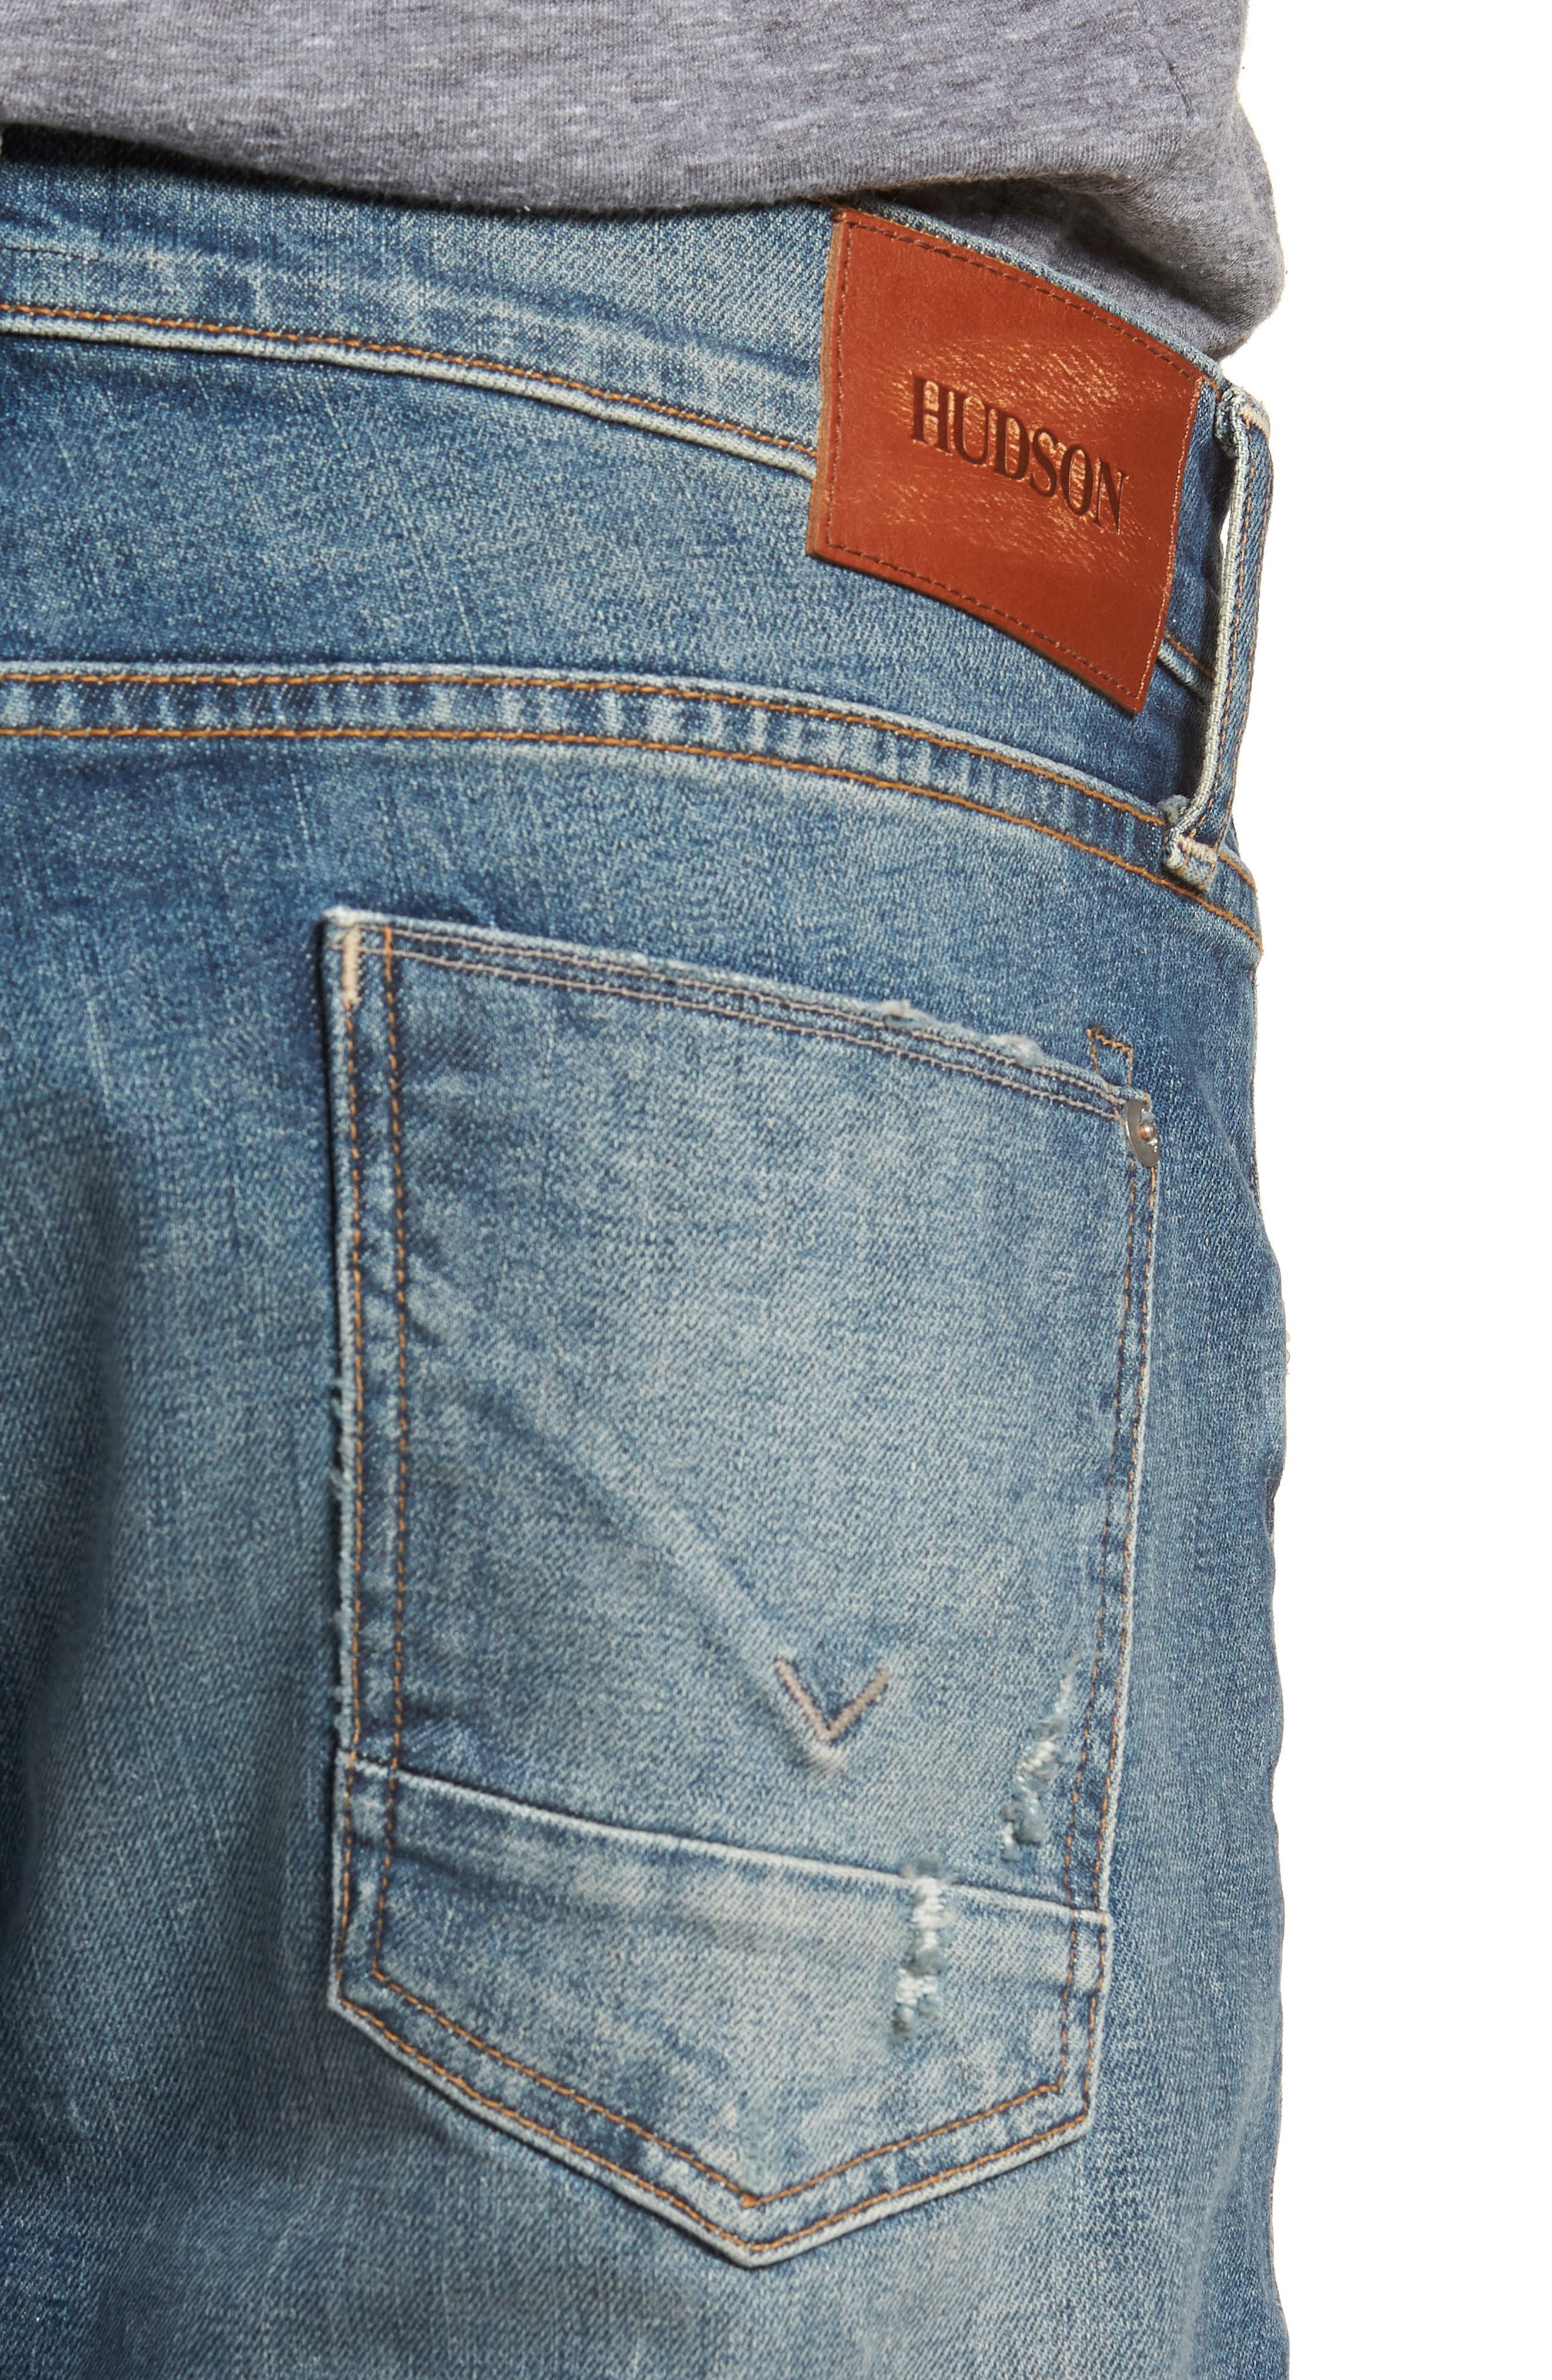 Byron Slim Straight Fit Jeans,                             Alternate thumbnail 4, color,                             HANG UP